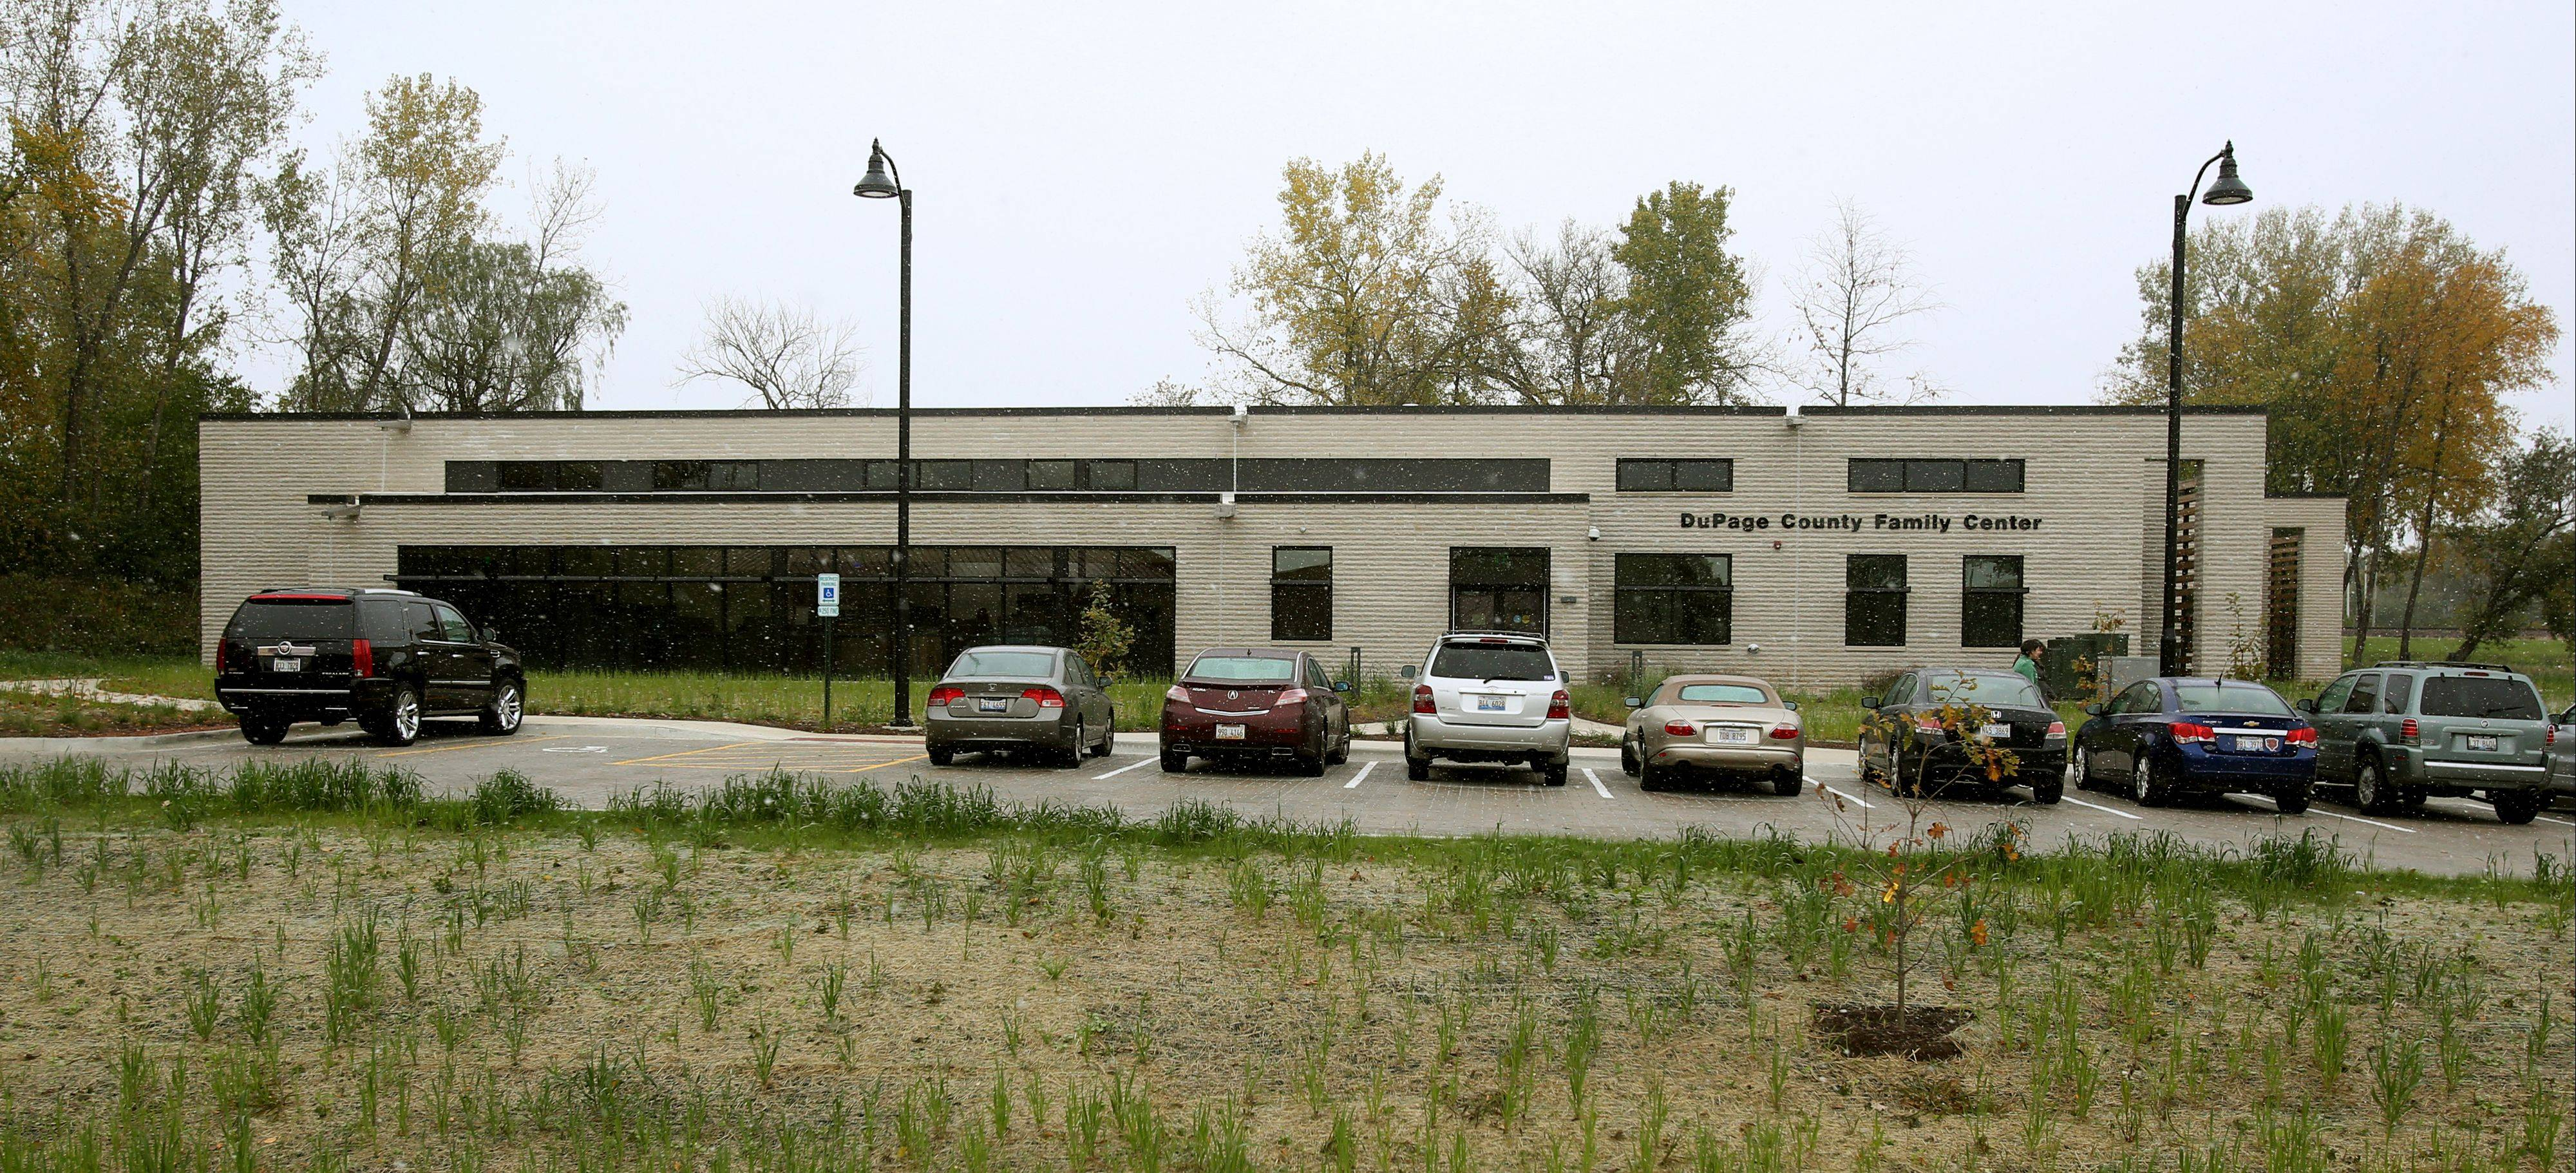 The DuPage County Family Center was constructed as part of the same $5.6 million project that built the adjacent Jeanine Nicarico Children's Advocacy Center.